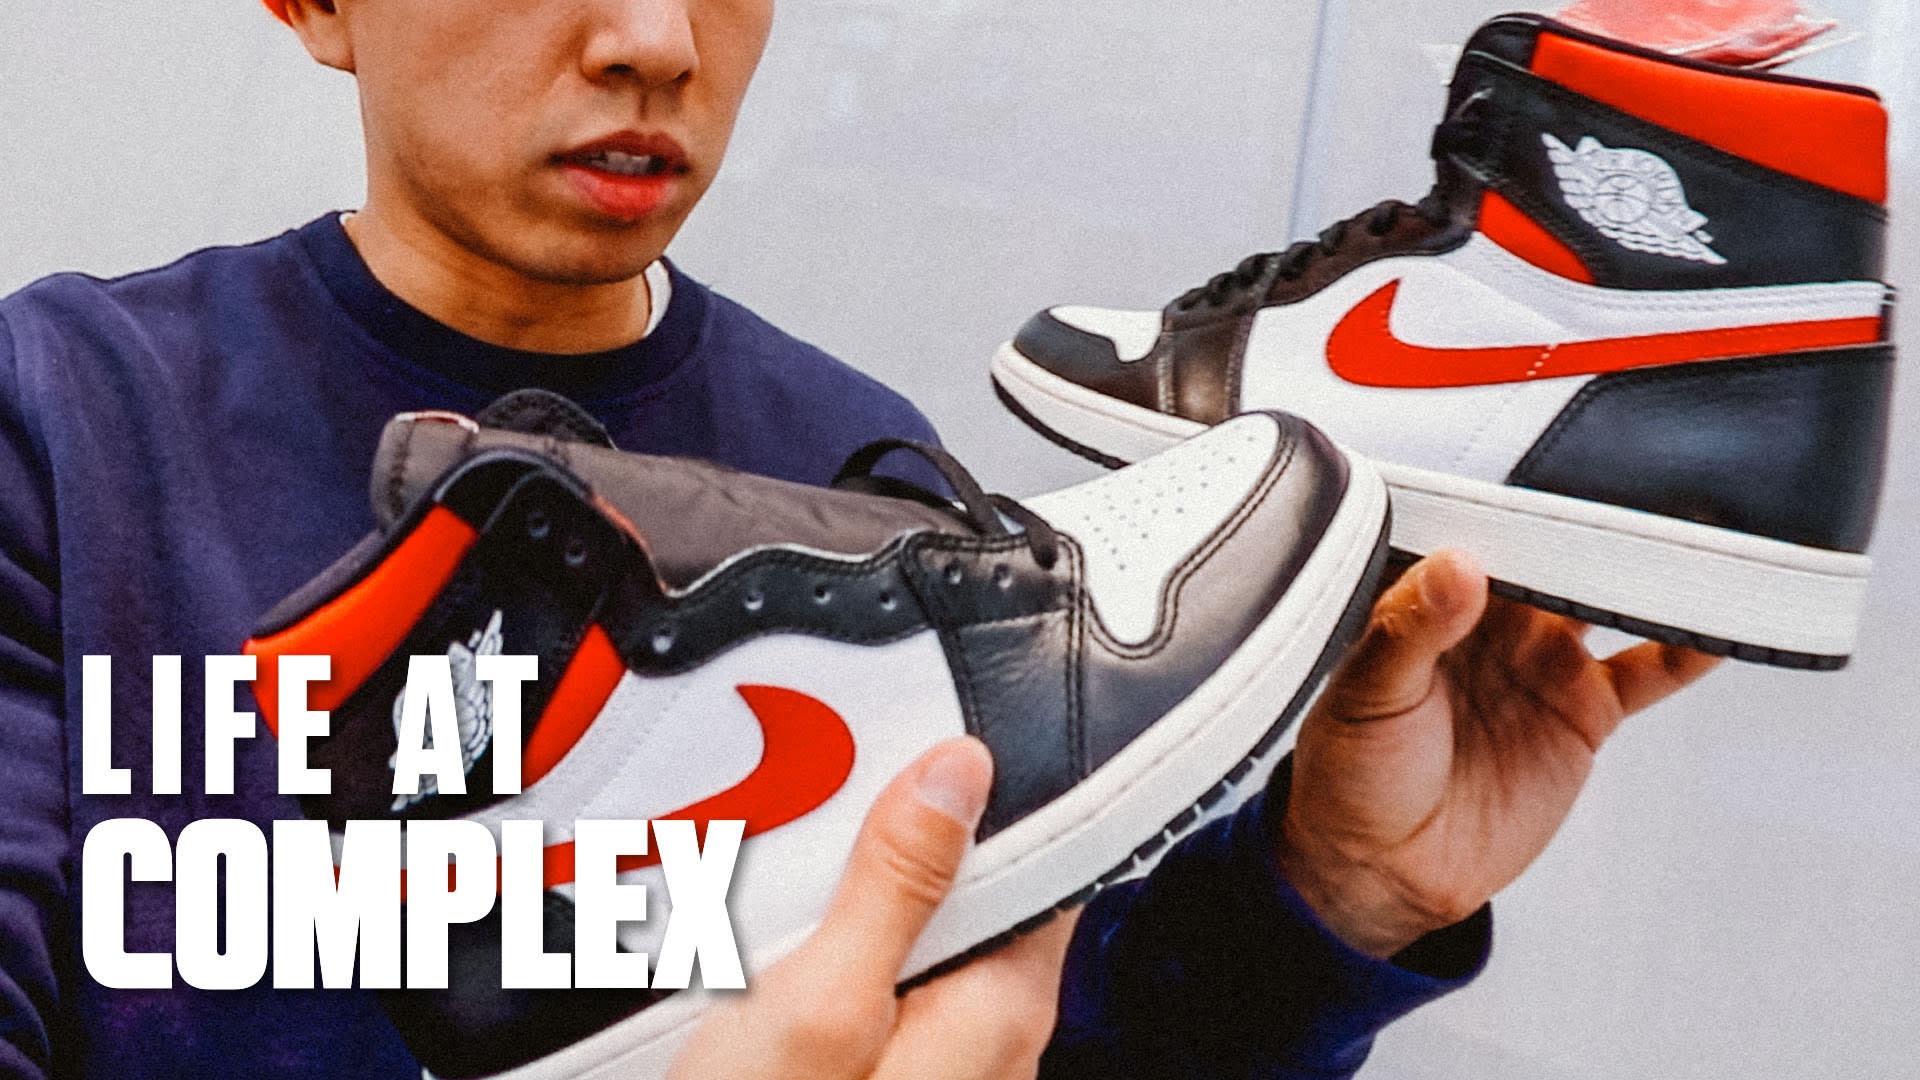 Jordan Spring Summer 2019 Preview | Life At Complex